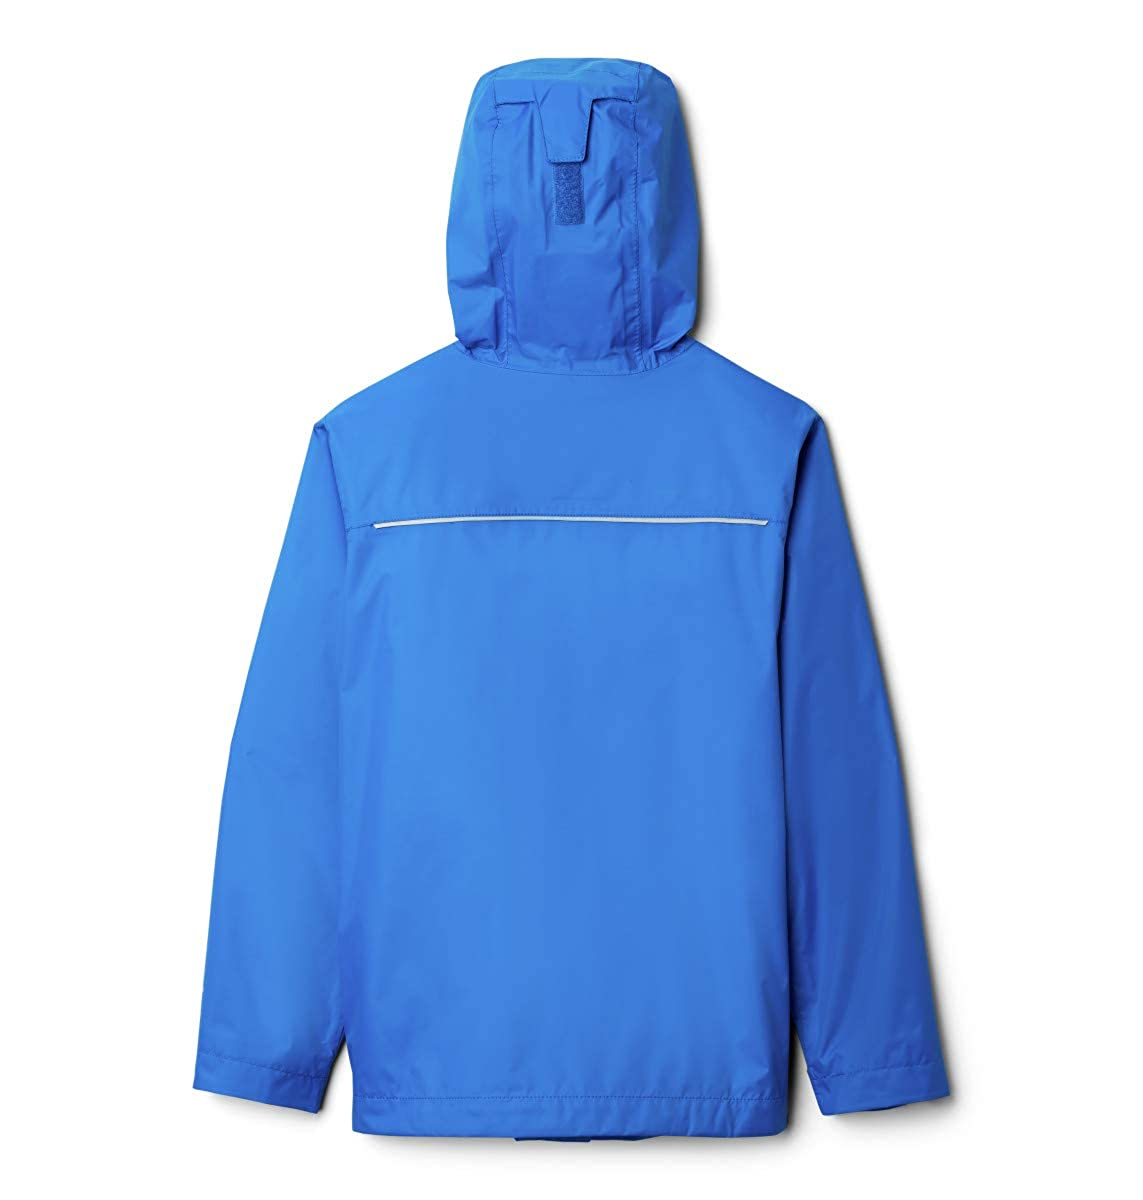 Small Super Blue Columbia Boys Little Watertight Jacket Waterproof and Breathable